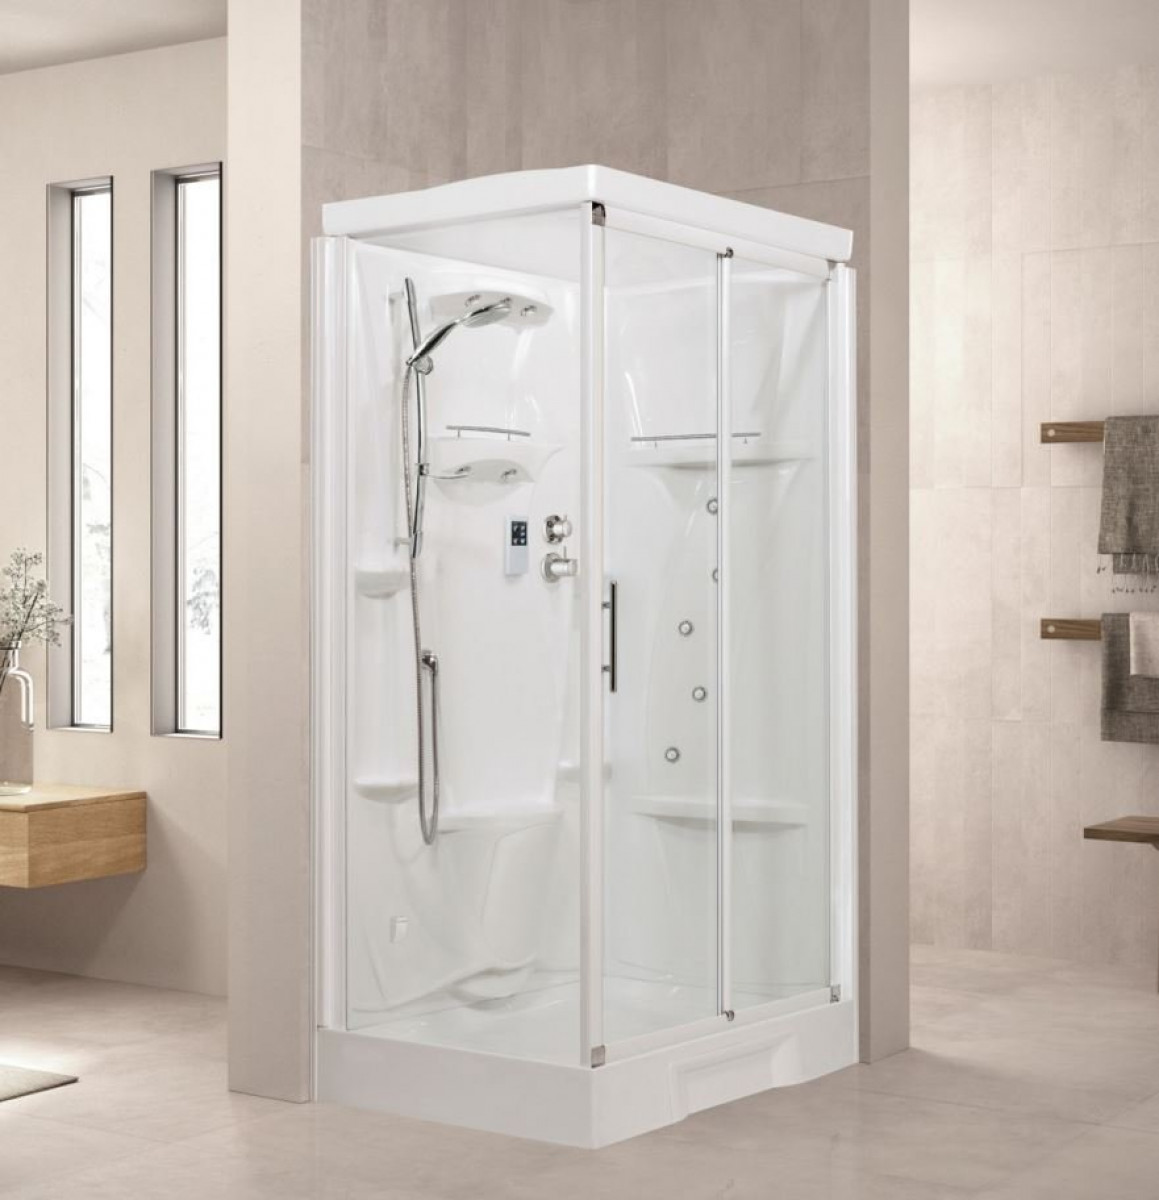 Novellini New Holiday Steam Enclosure, 2P 1200mm x 800mm -